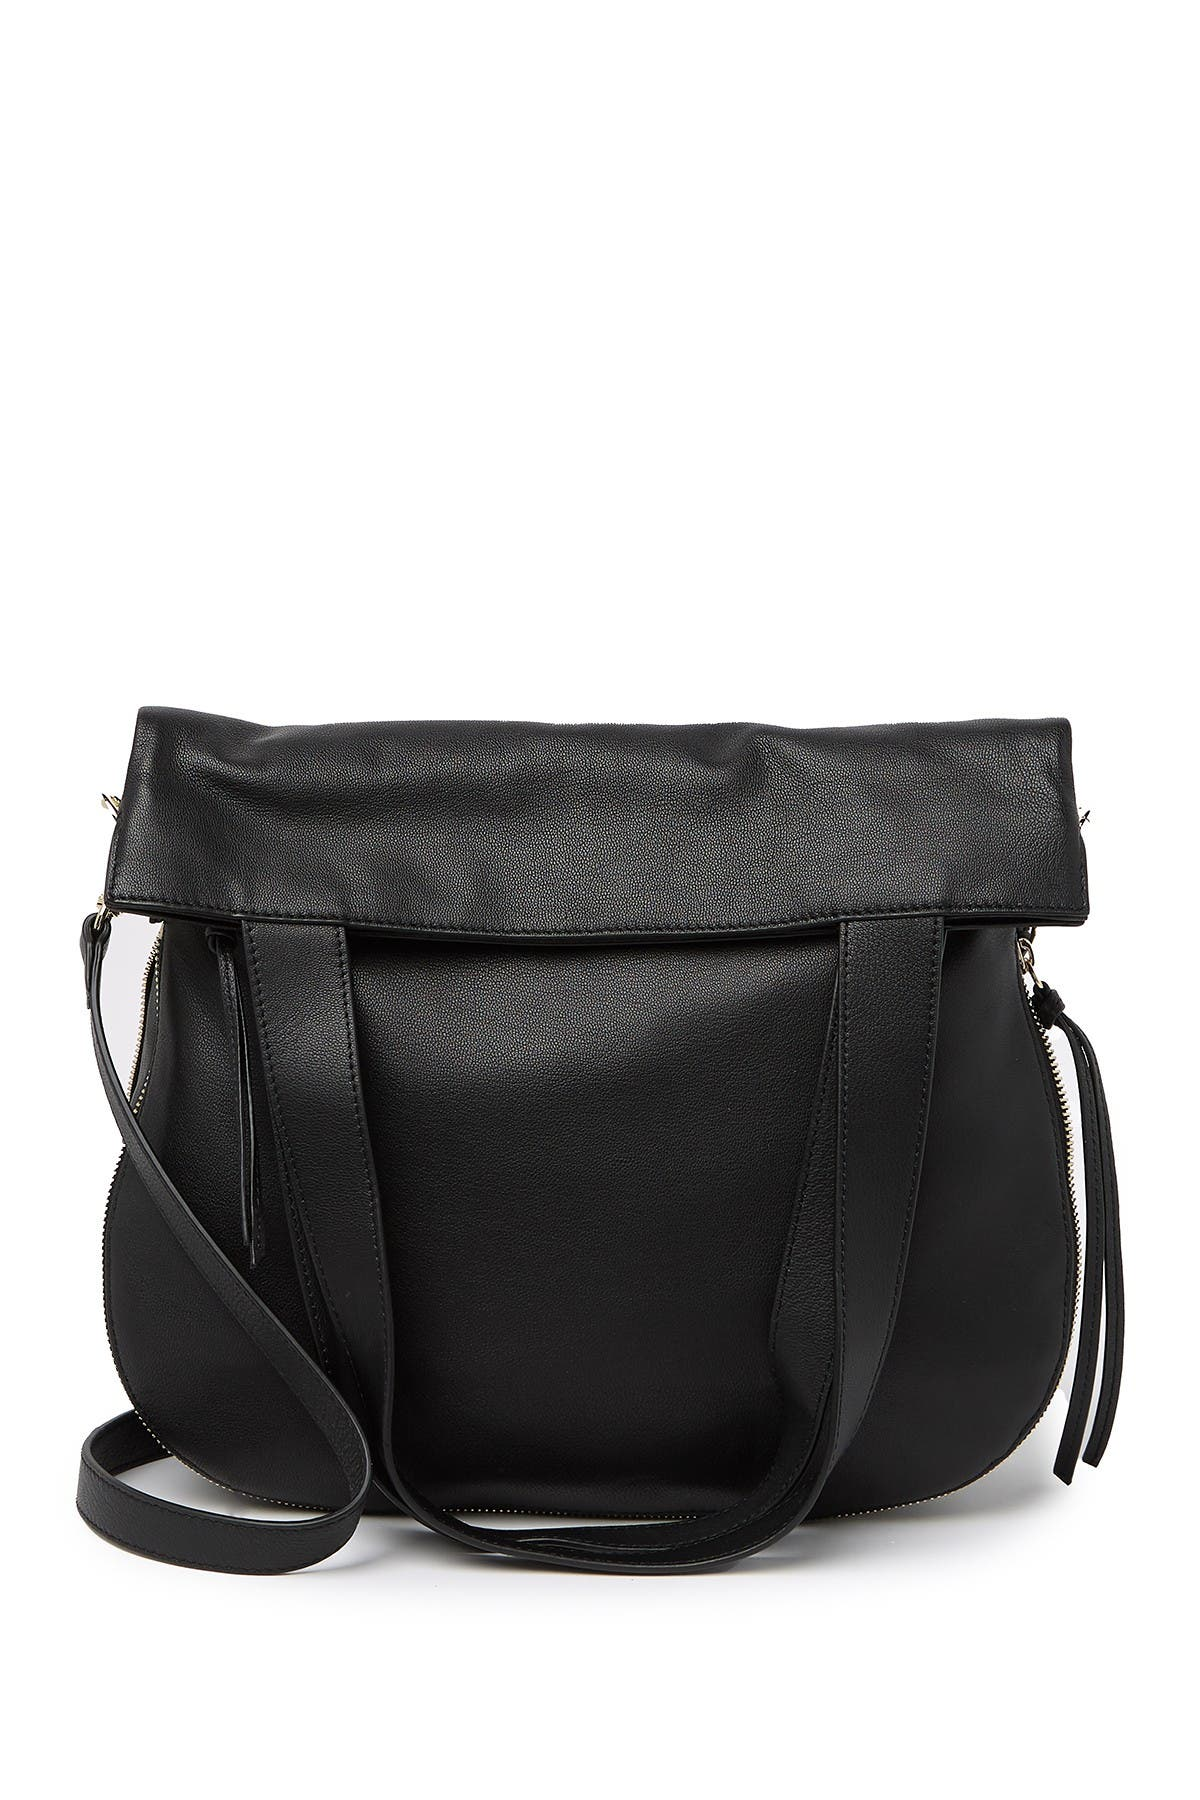 Image of Vince Camuto Kenzy Tote